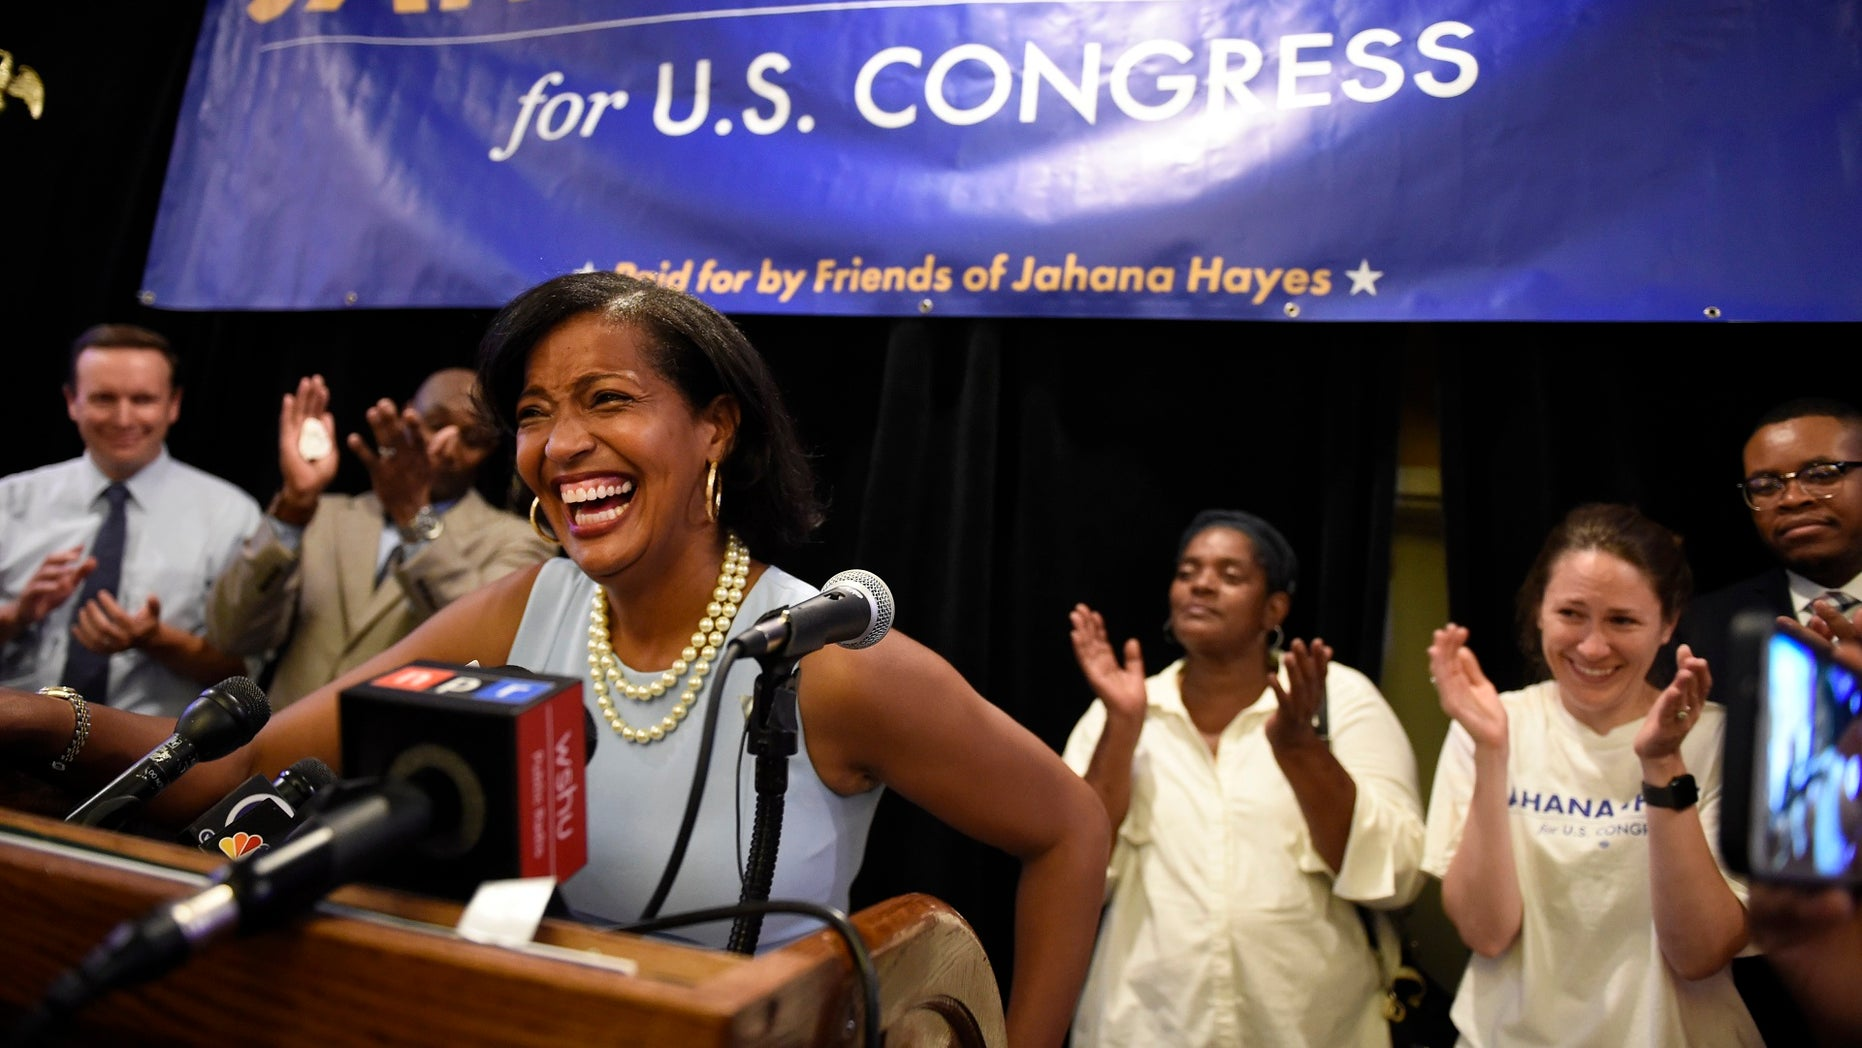 Jahana Hayes wins the Democratic primary in Connecticut's 5th District. A former National Teacher of the Year recipient, Hayes defeated a veteran politician in the primary.